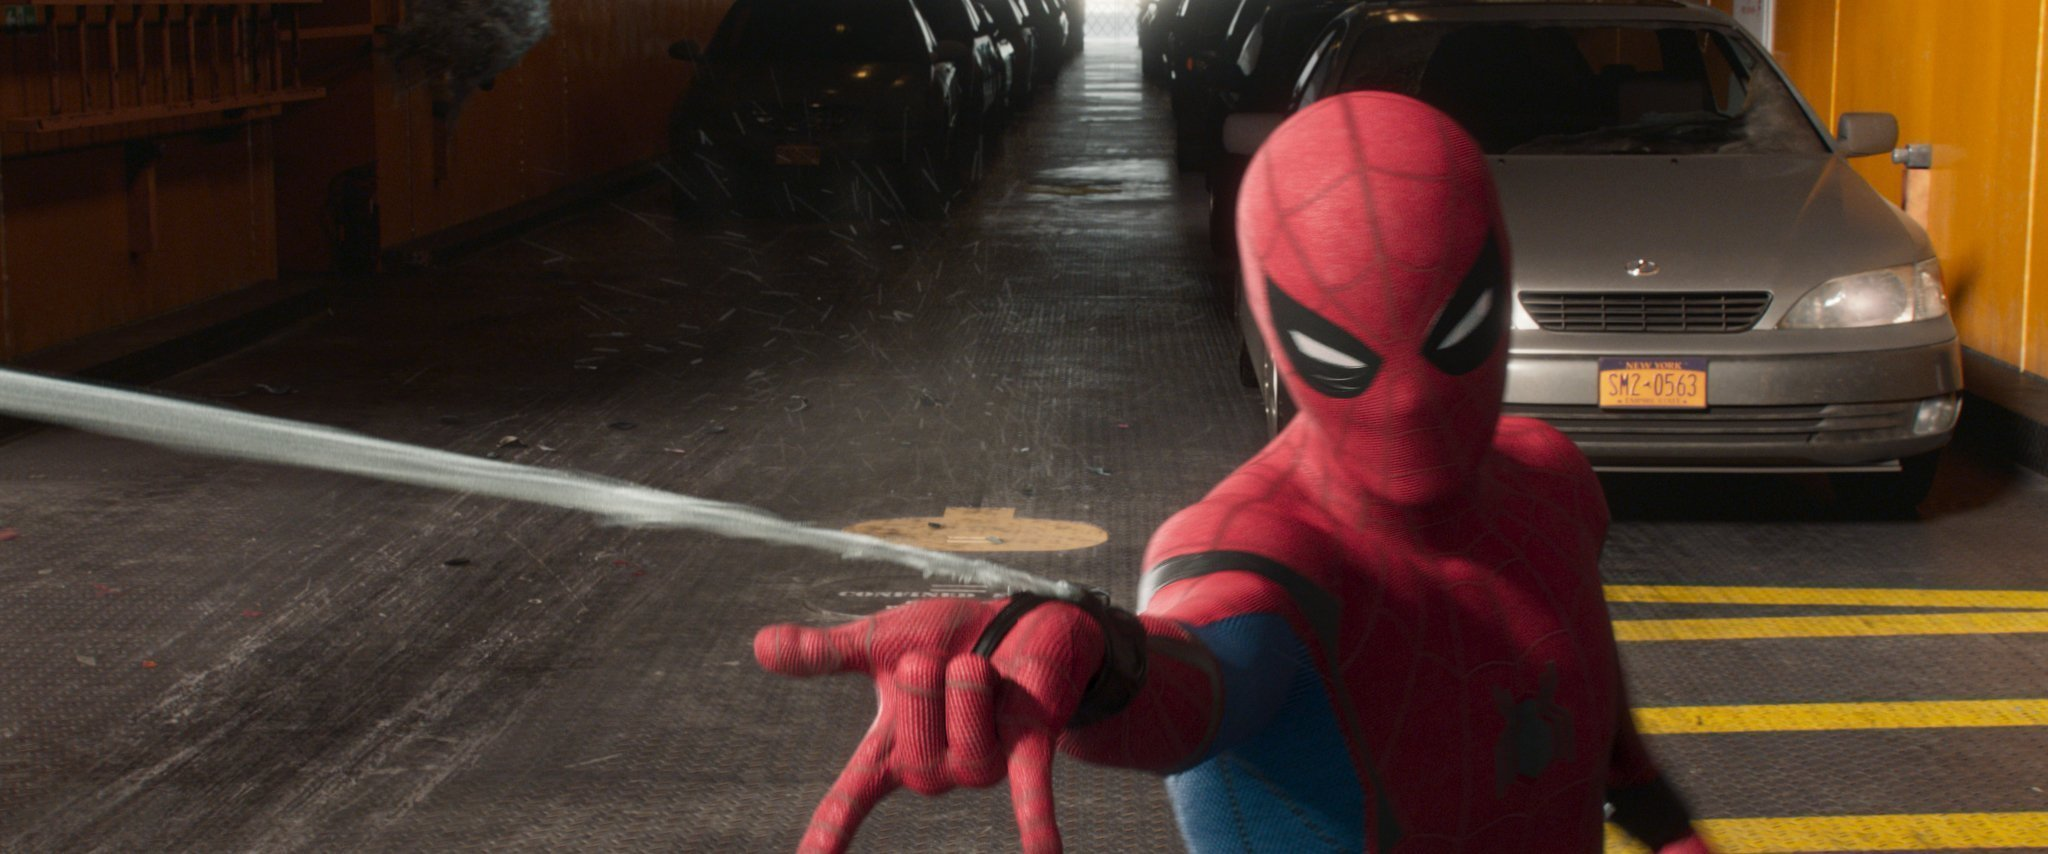 Photo du film Spider-Man: Homecoming avec le lance-toiles